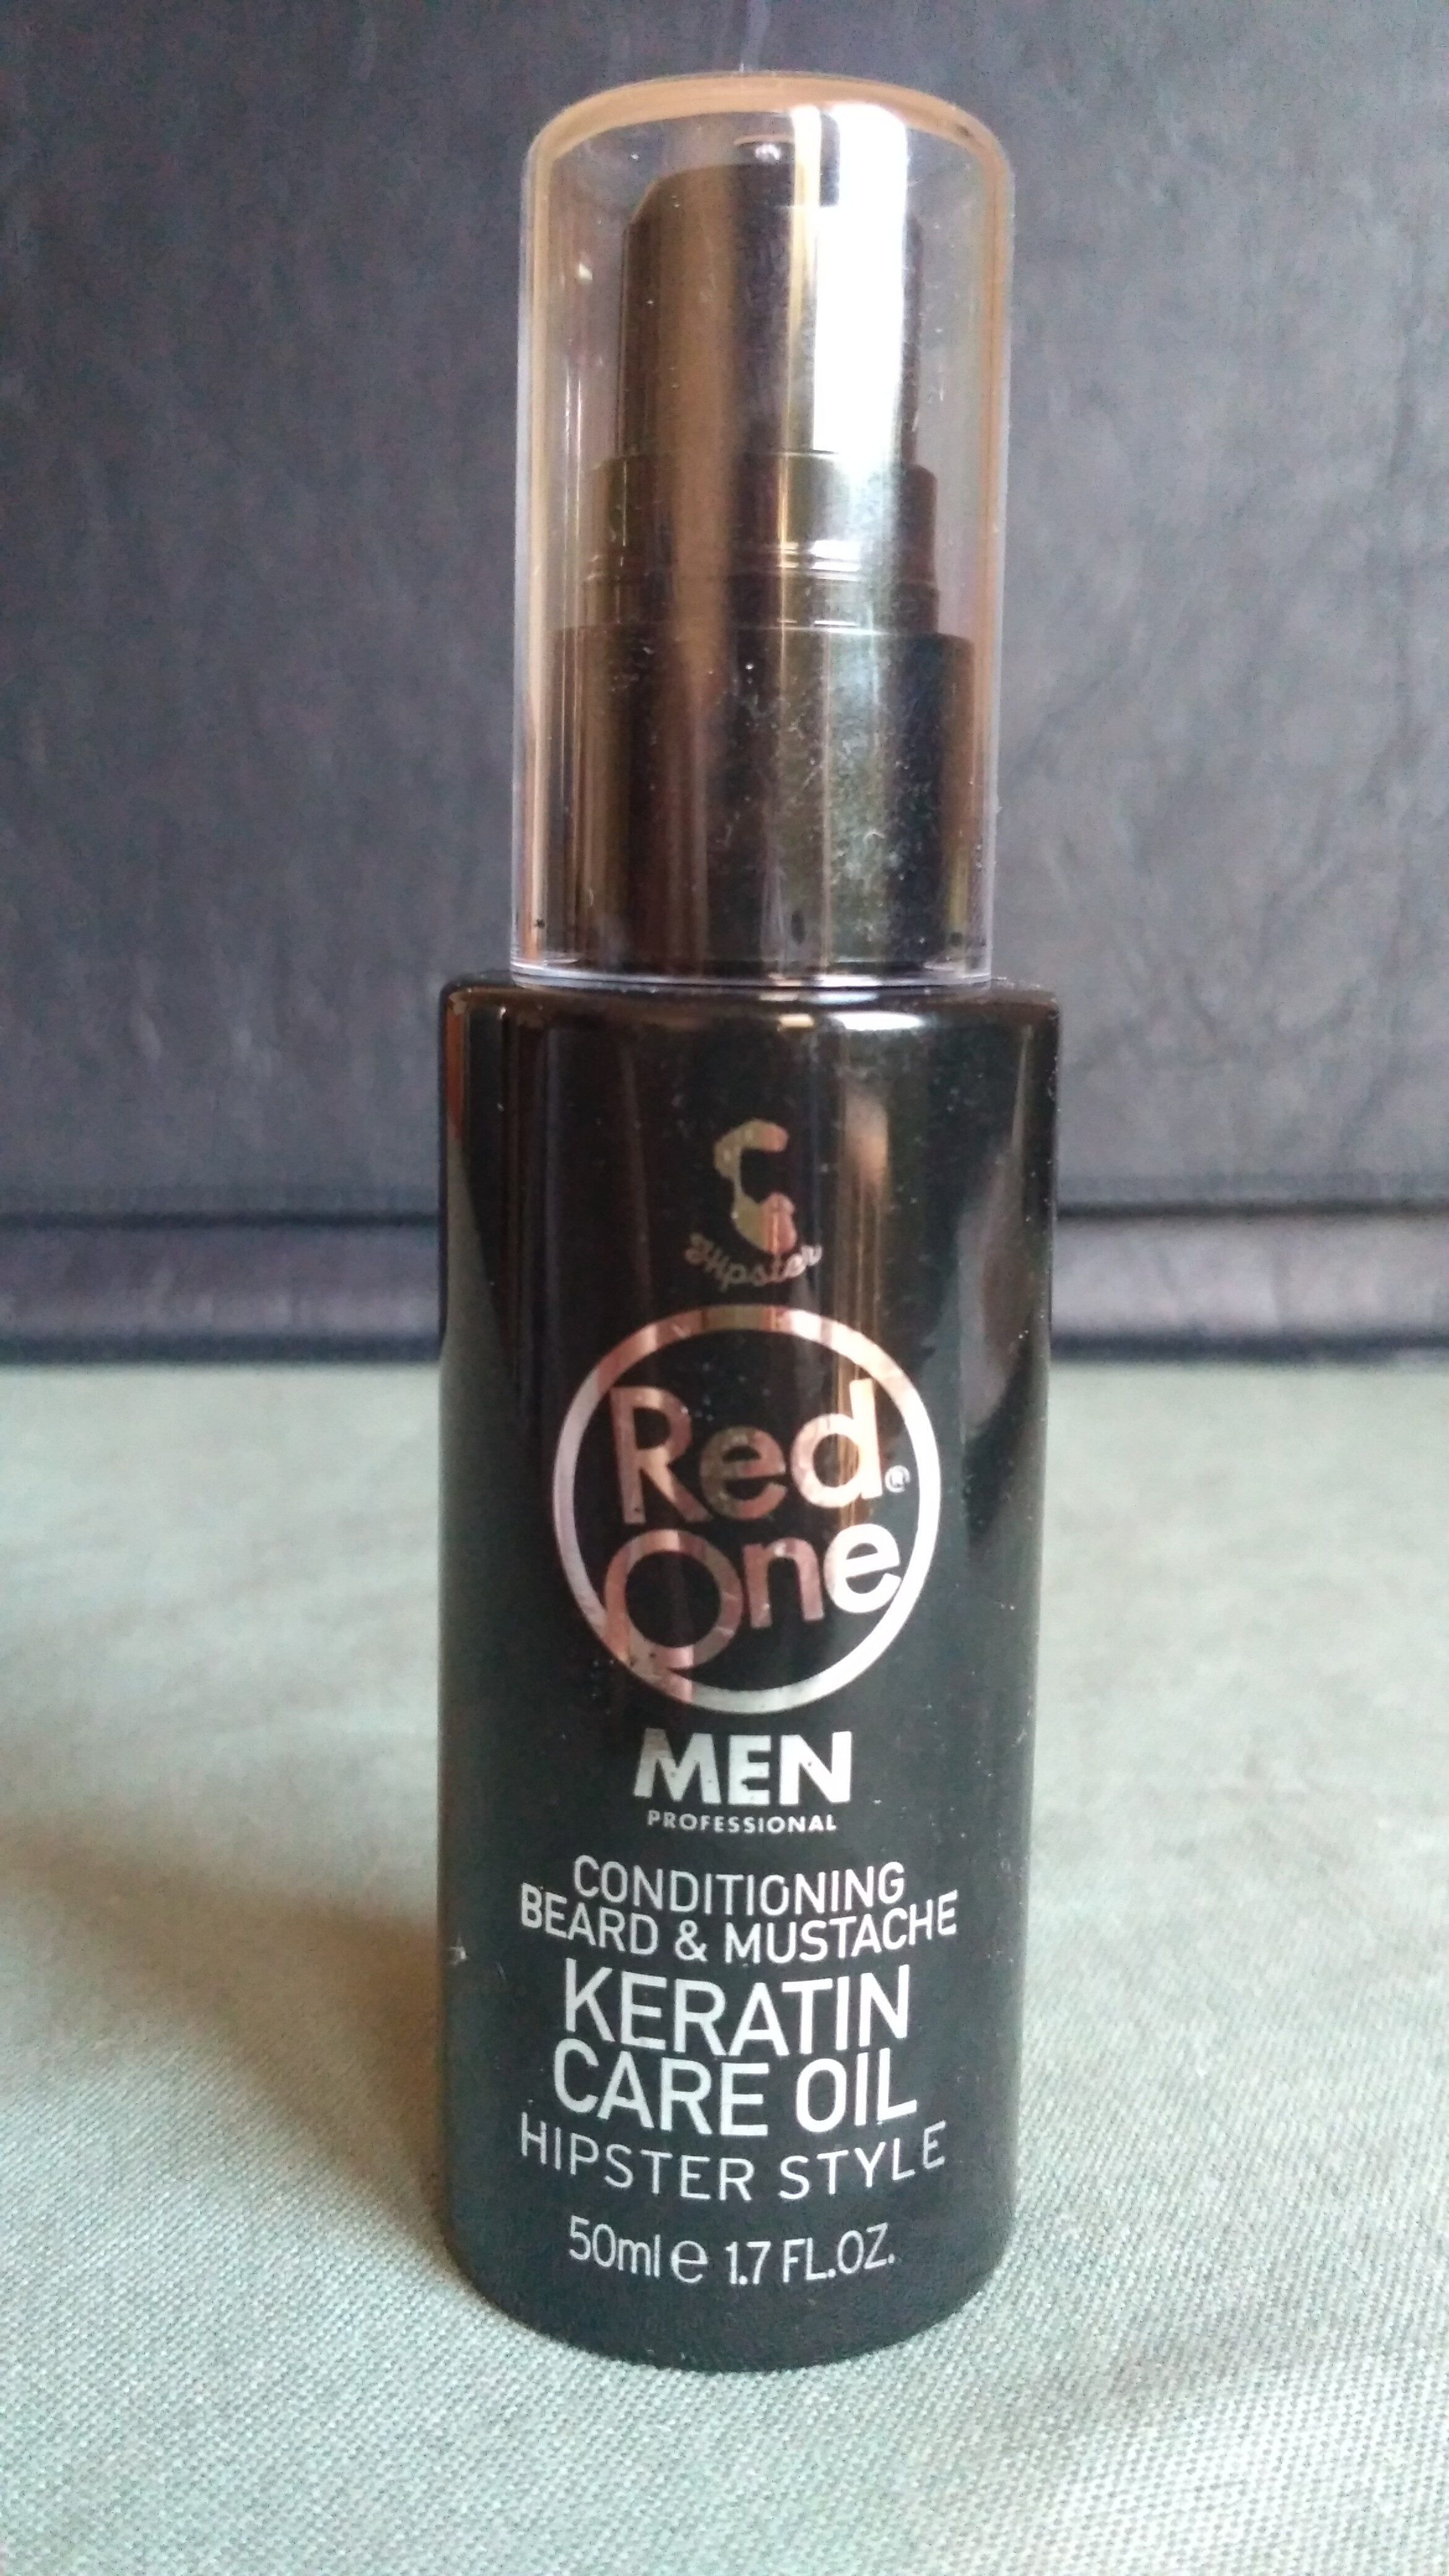 Conditioning Beard & Mustache Keratin Care Oil Hipster Style - Produit